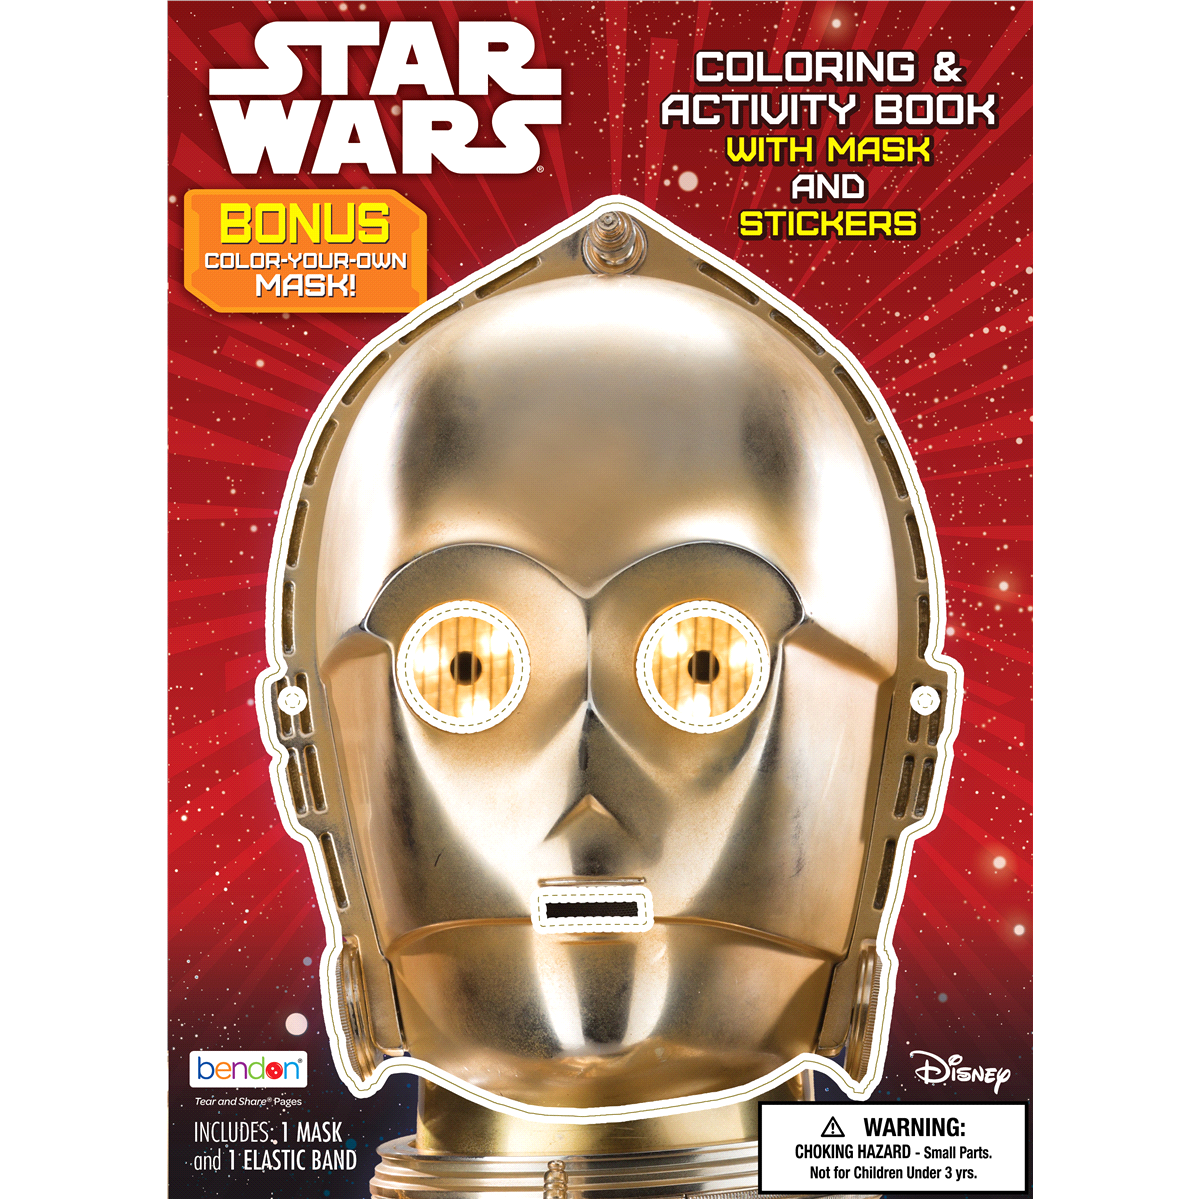 Star Wars Coloring and Activity Book